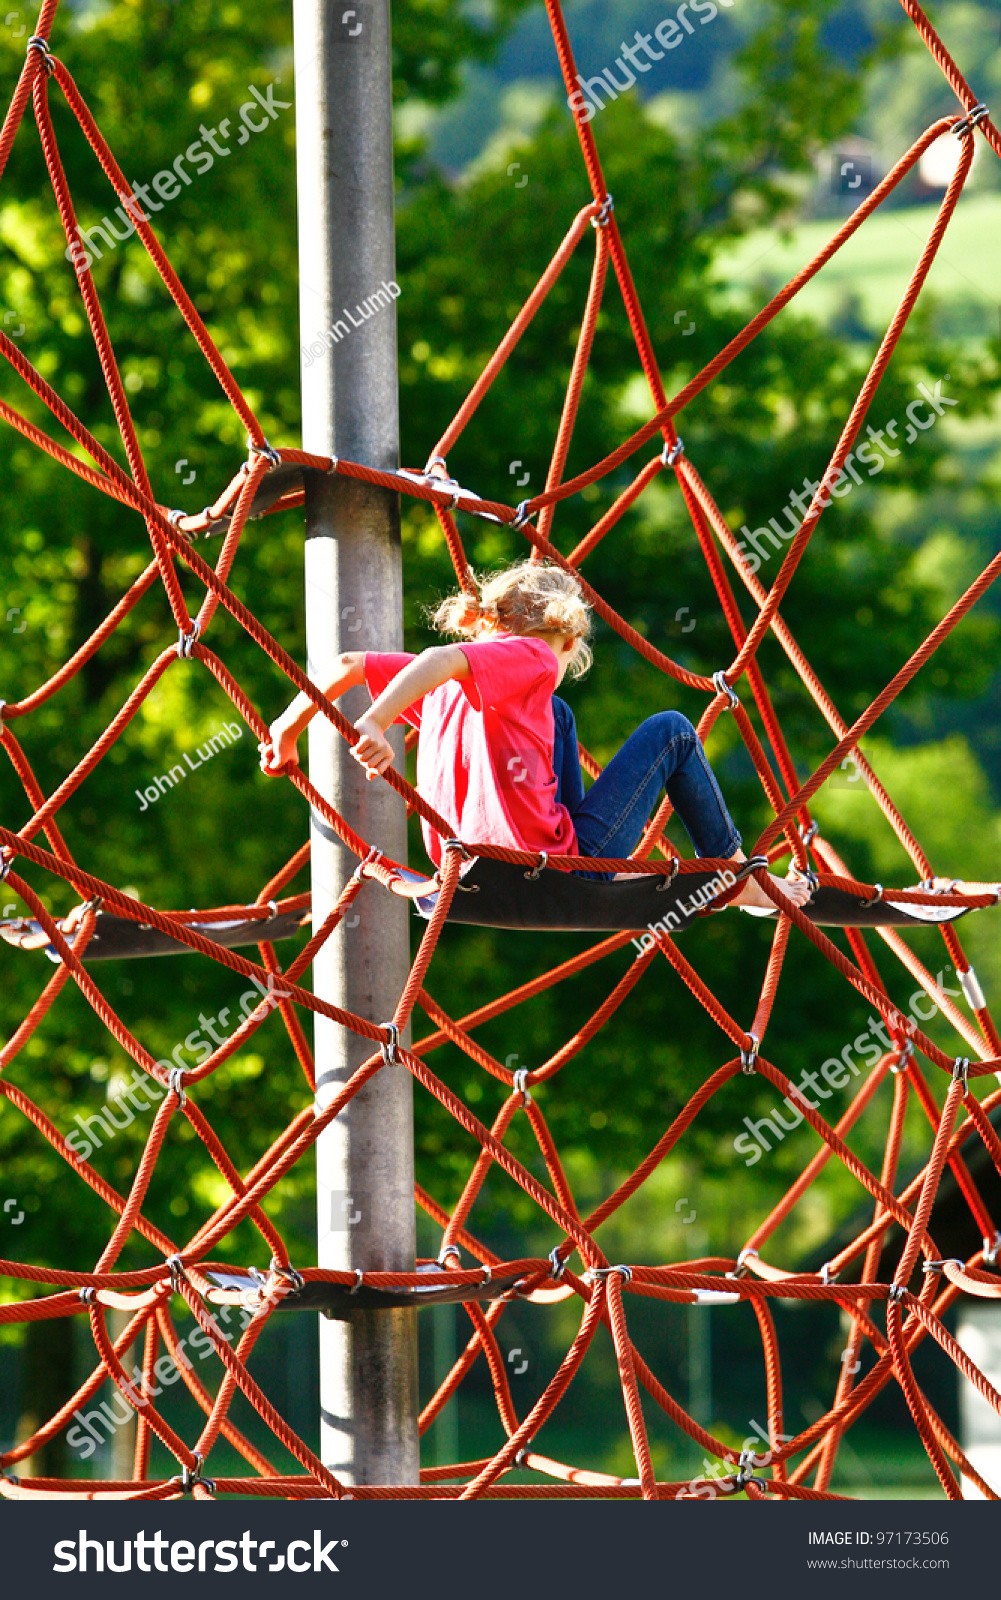 Small Blonde Girl Climbing Rope Climbing Stock Photo (Royalty Free ...